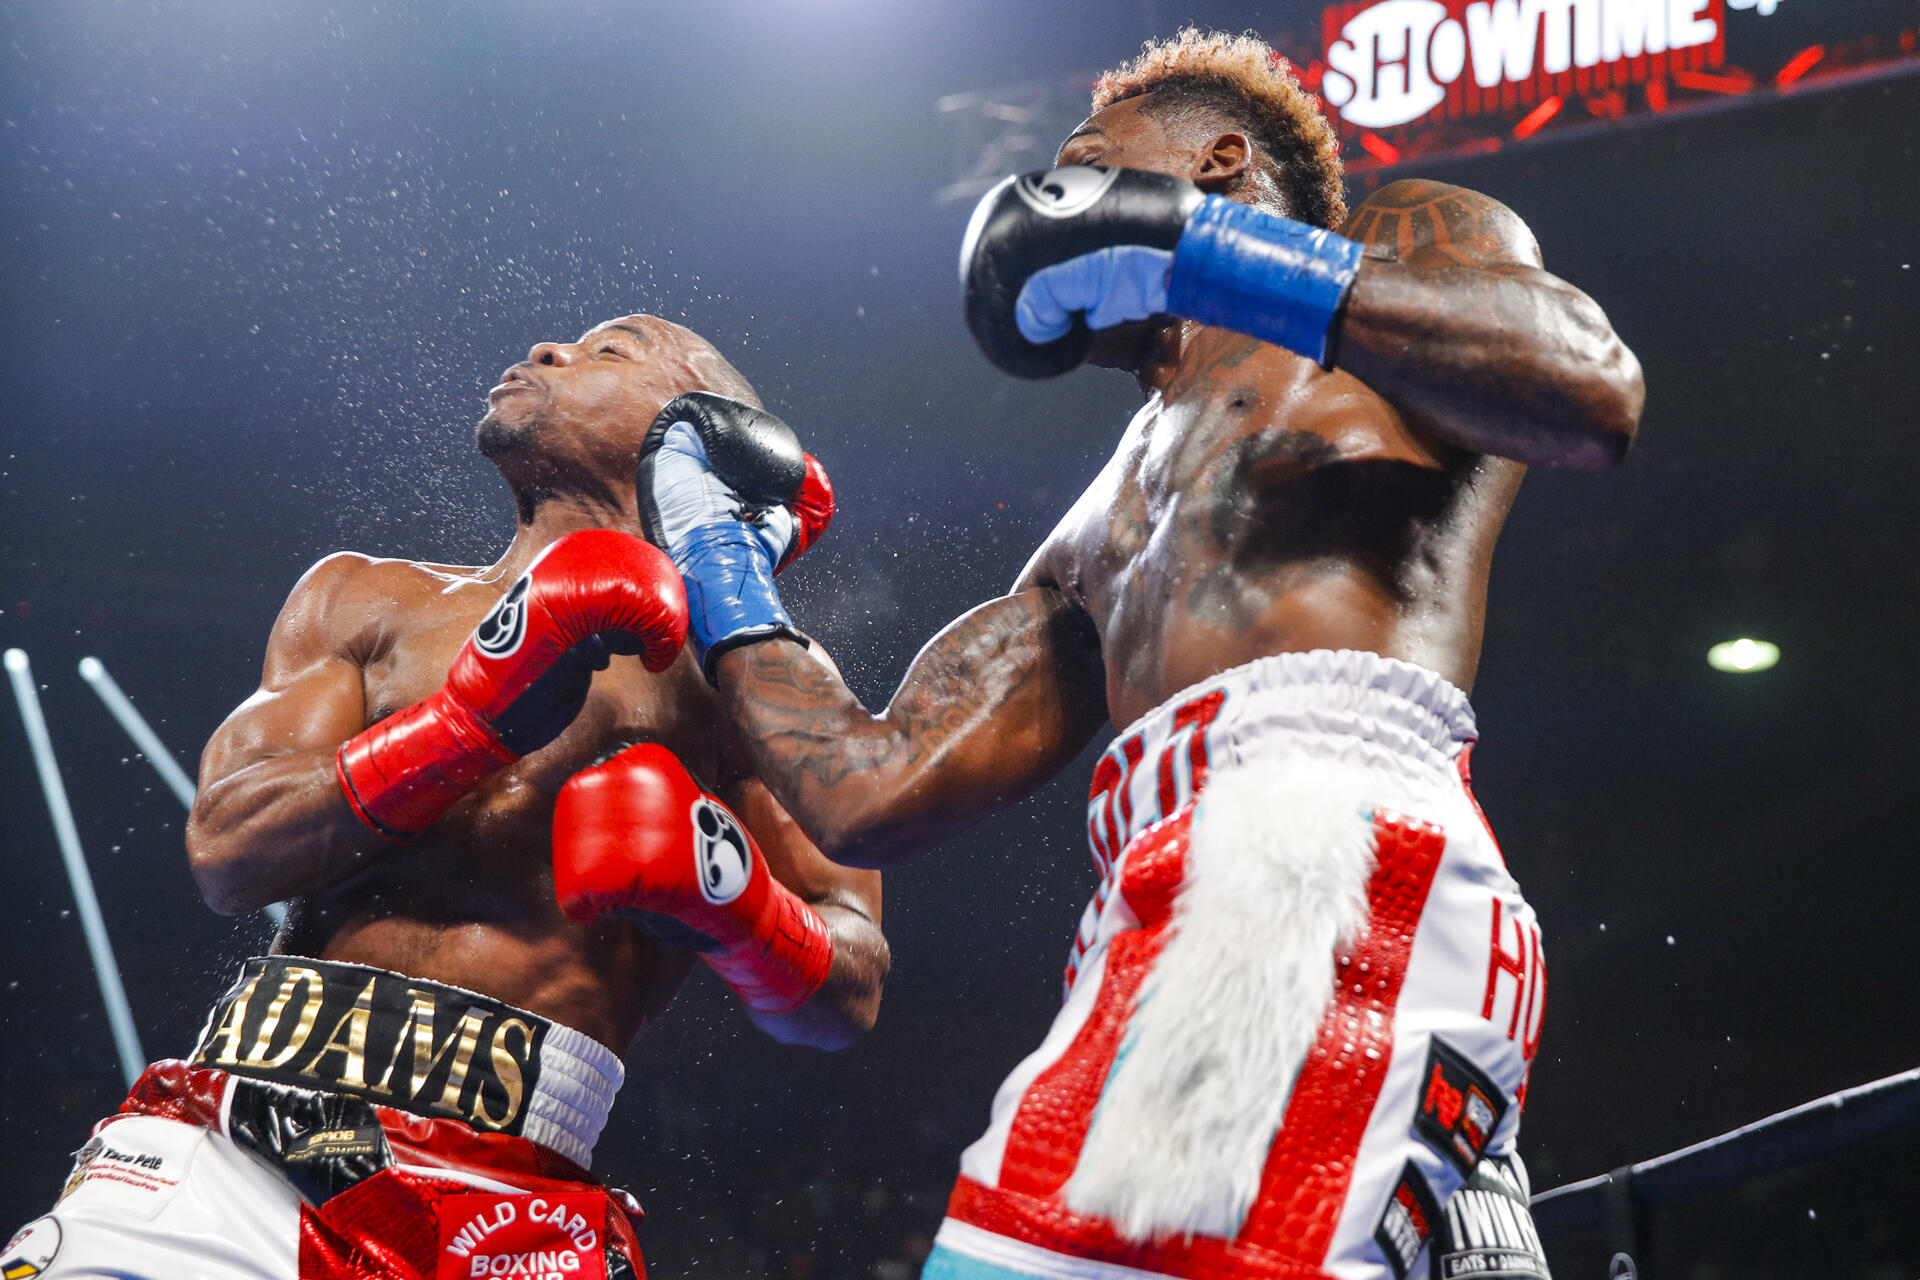 Jermall Charlo's (right) right uppercut jolted Brandon Adams more than a few times during the course of 12 rounds. Photo by Esther Lin/Showtime.